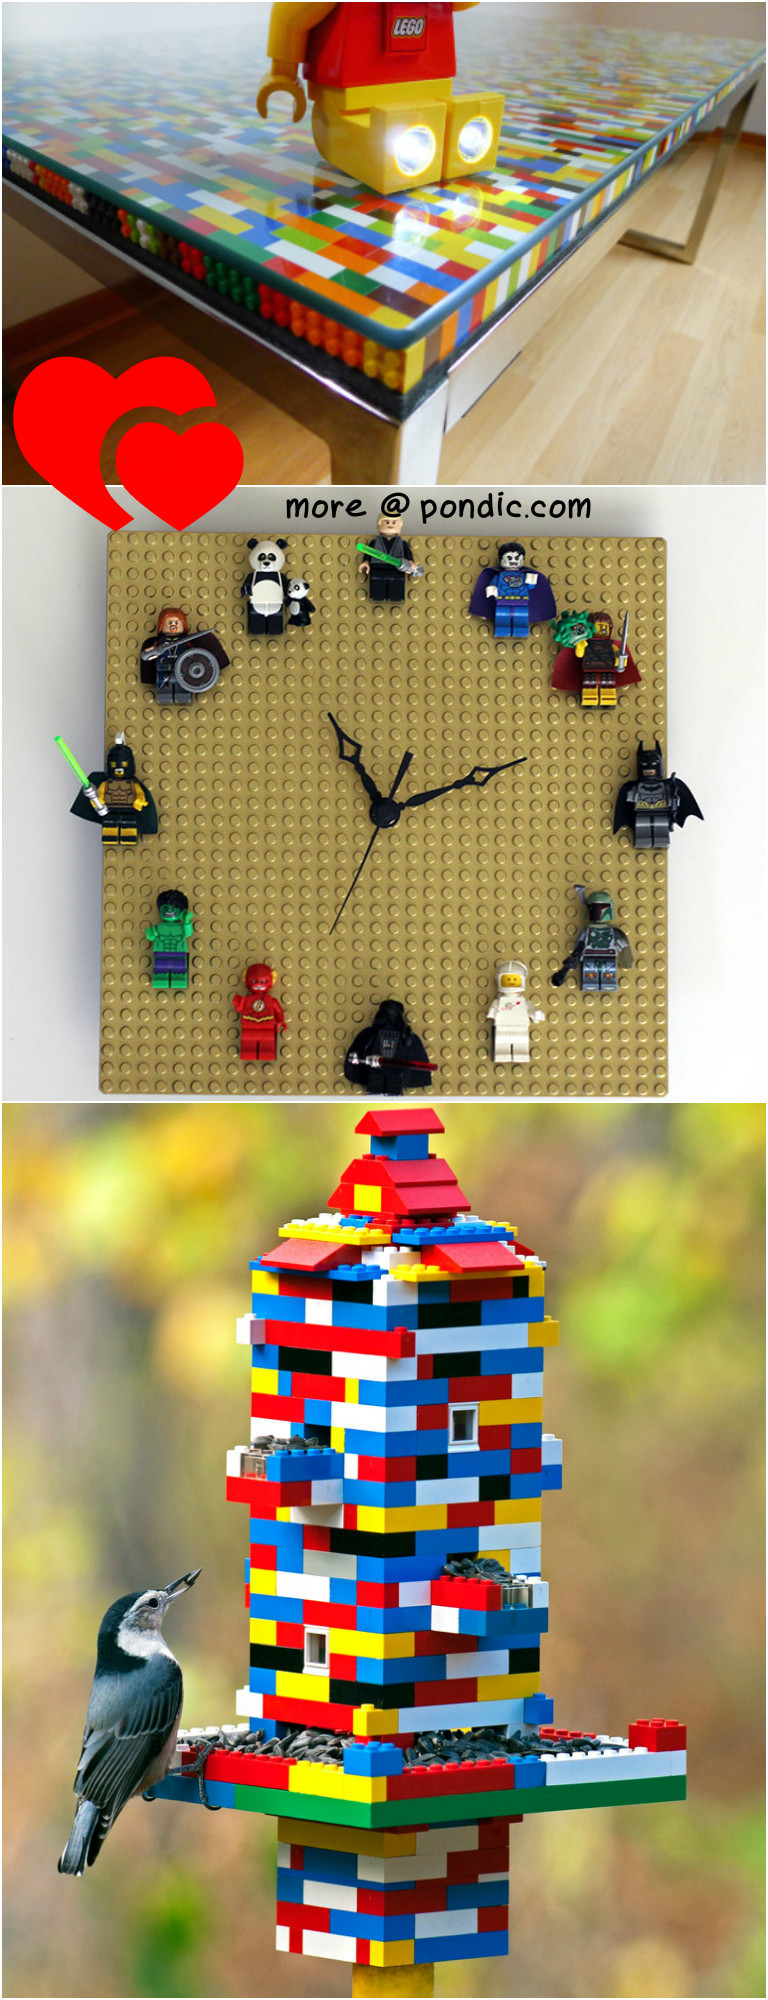 20 Really Cool And Useful Things To Build With Legos Pondic